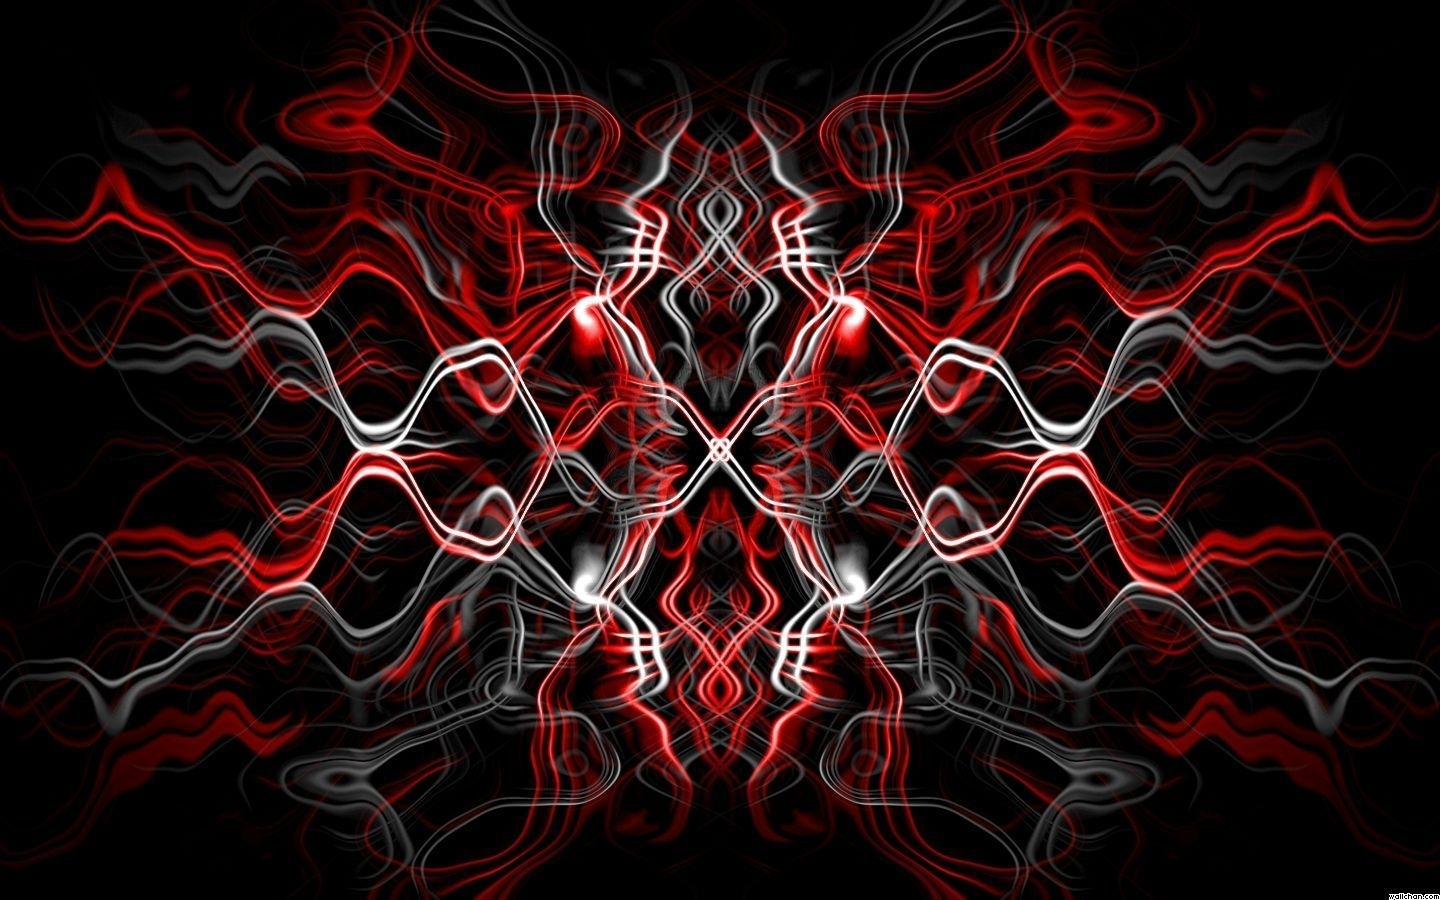 Red Abstract Wallpaper Hd Posted By Samantha Cunningham